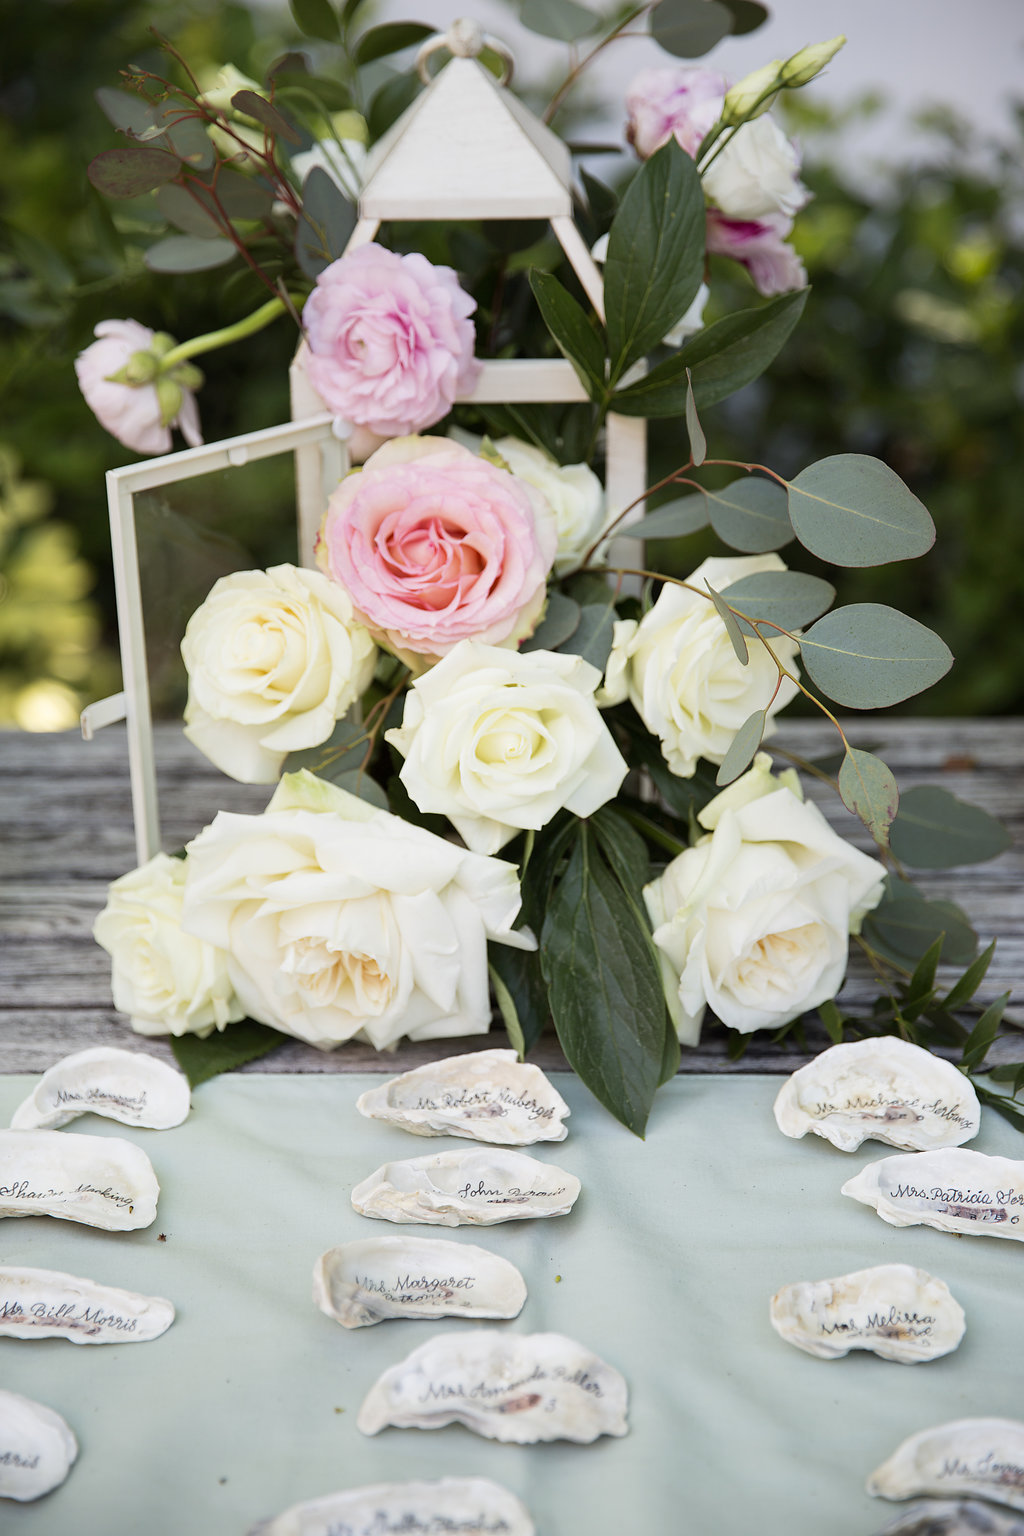 Wedding Reception Escort Card Table with Names Painted on Shells, with Ivory and Pink Rose Bouquet with Greenery in Lantern | Tampa Bay Florida Wedding Decor